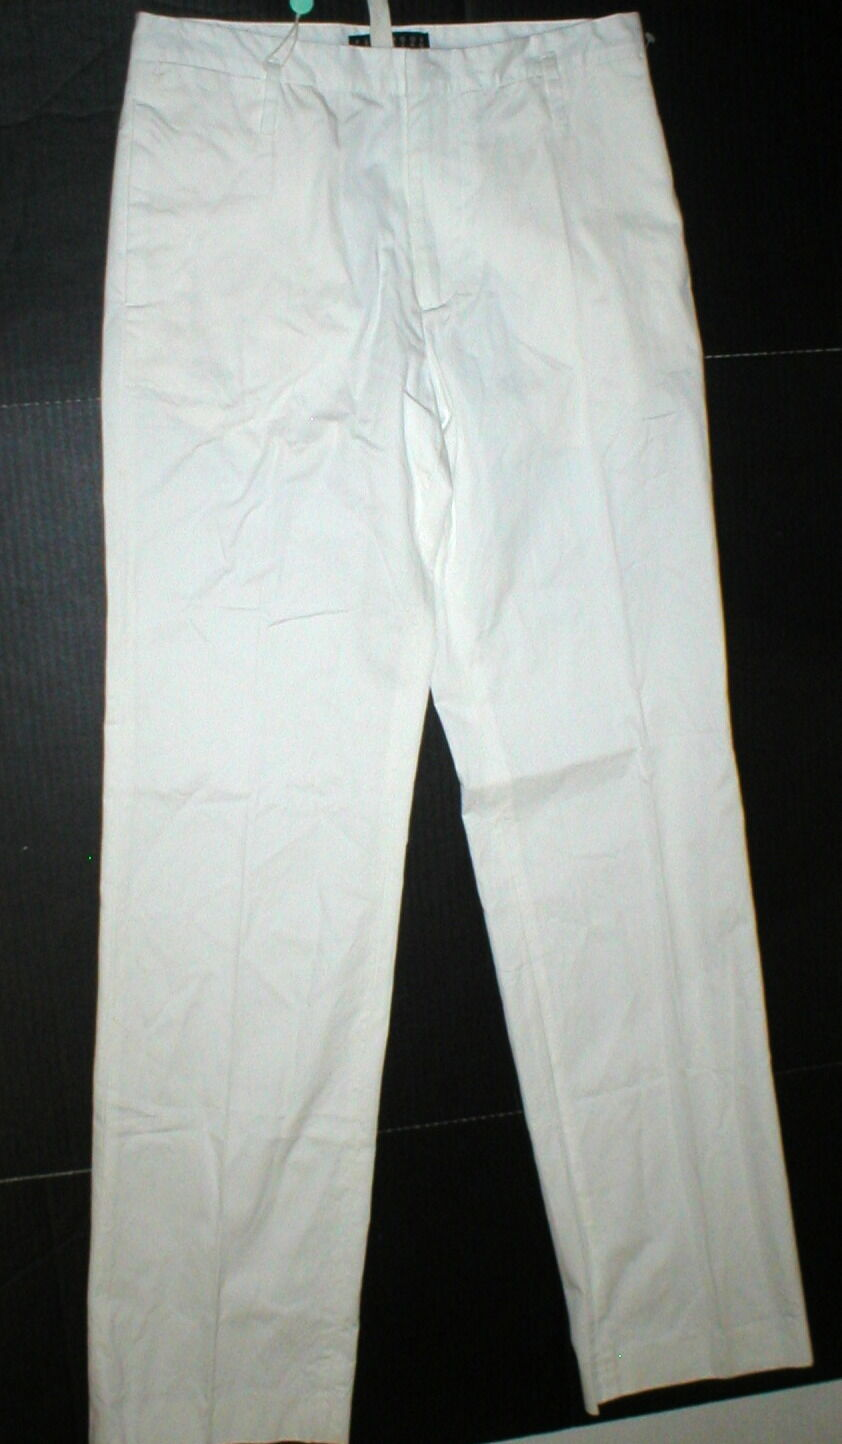 New Womens NWT  674 Designer Peachoo + Krejberg Ivory White Pants M France Tall